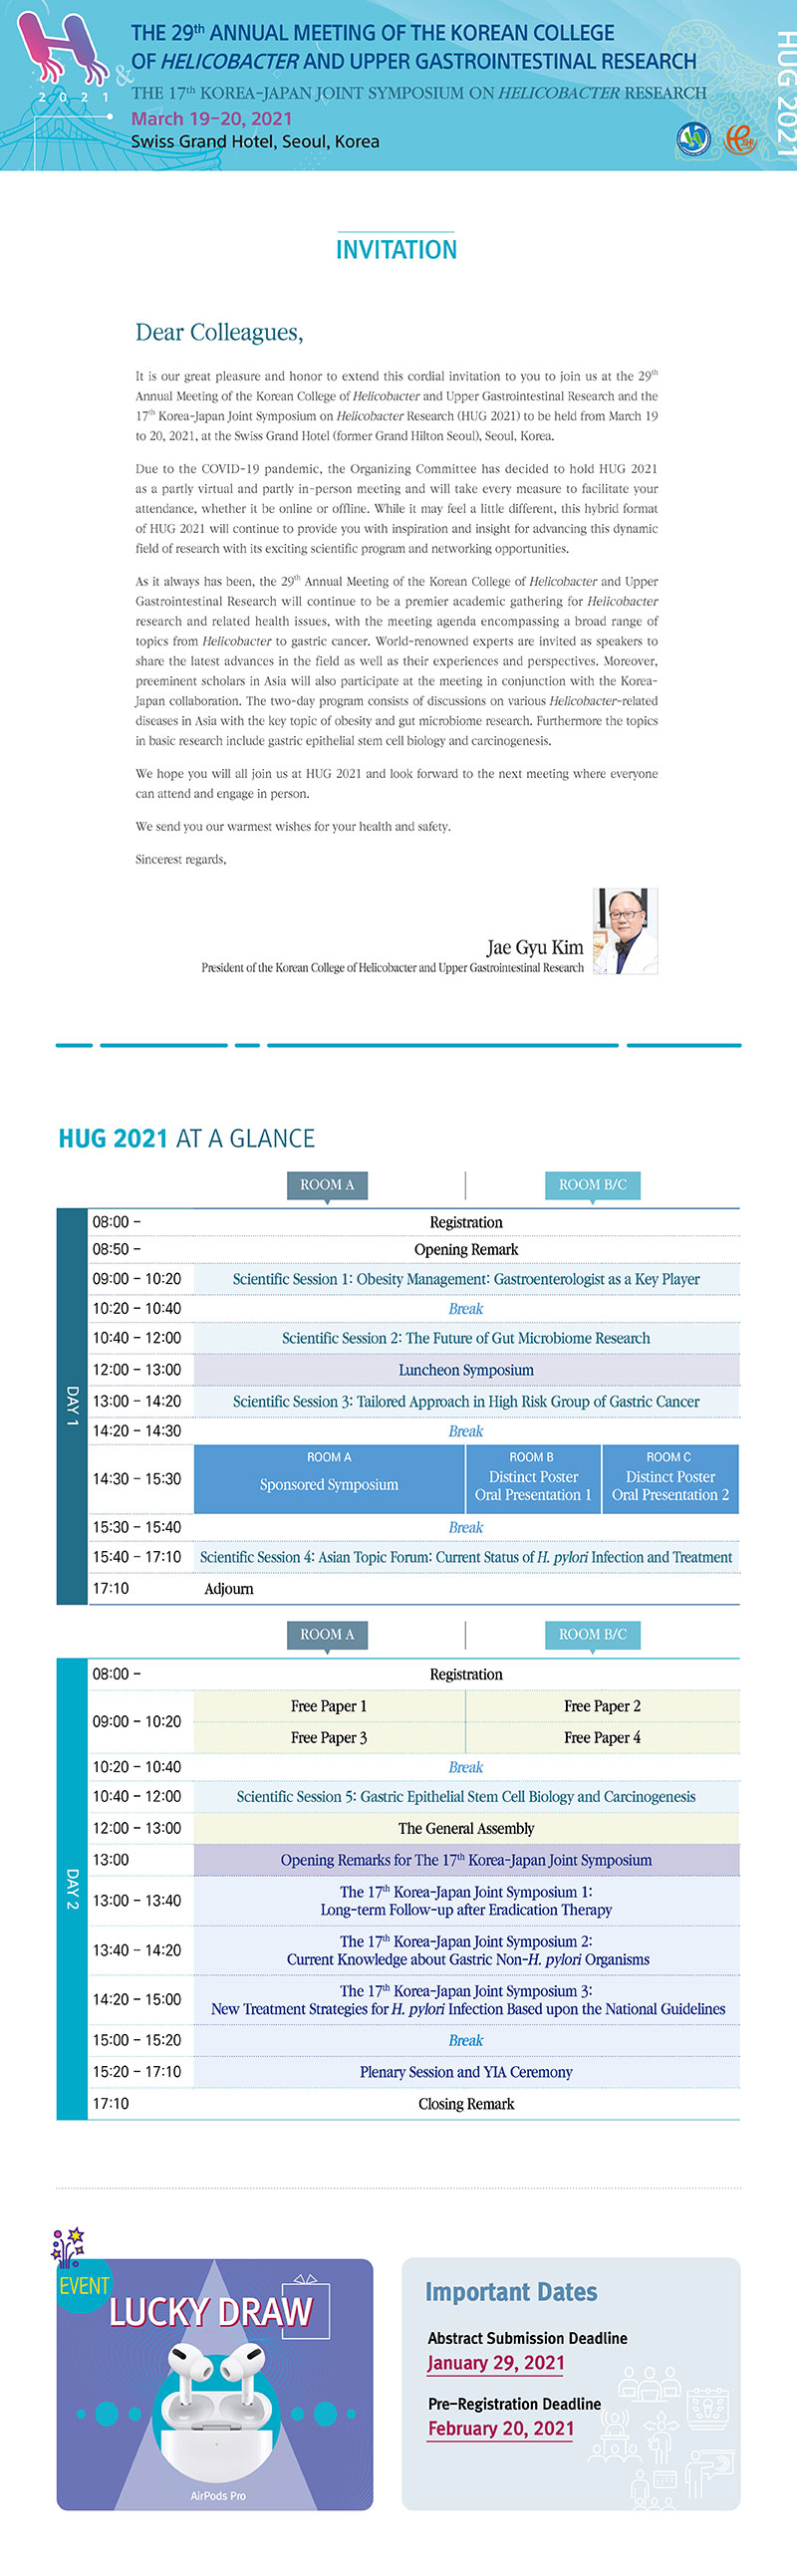 """29th Annual Meeting of the Korean College of Helicobacter and Upper Gastrointestinal Research & The 17th Korea-Japan Joint Symposium on Helicobacter Research"""" (HUG 2021) from March 19th, 2021 to March 20th 2021."""